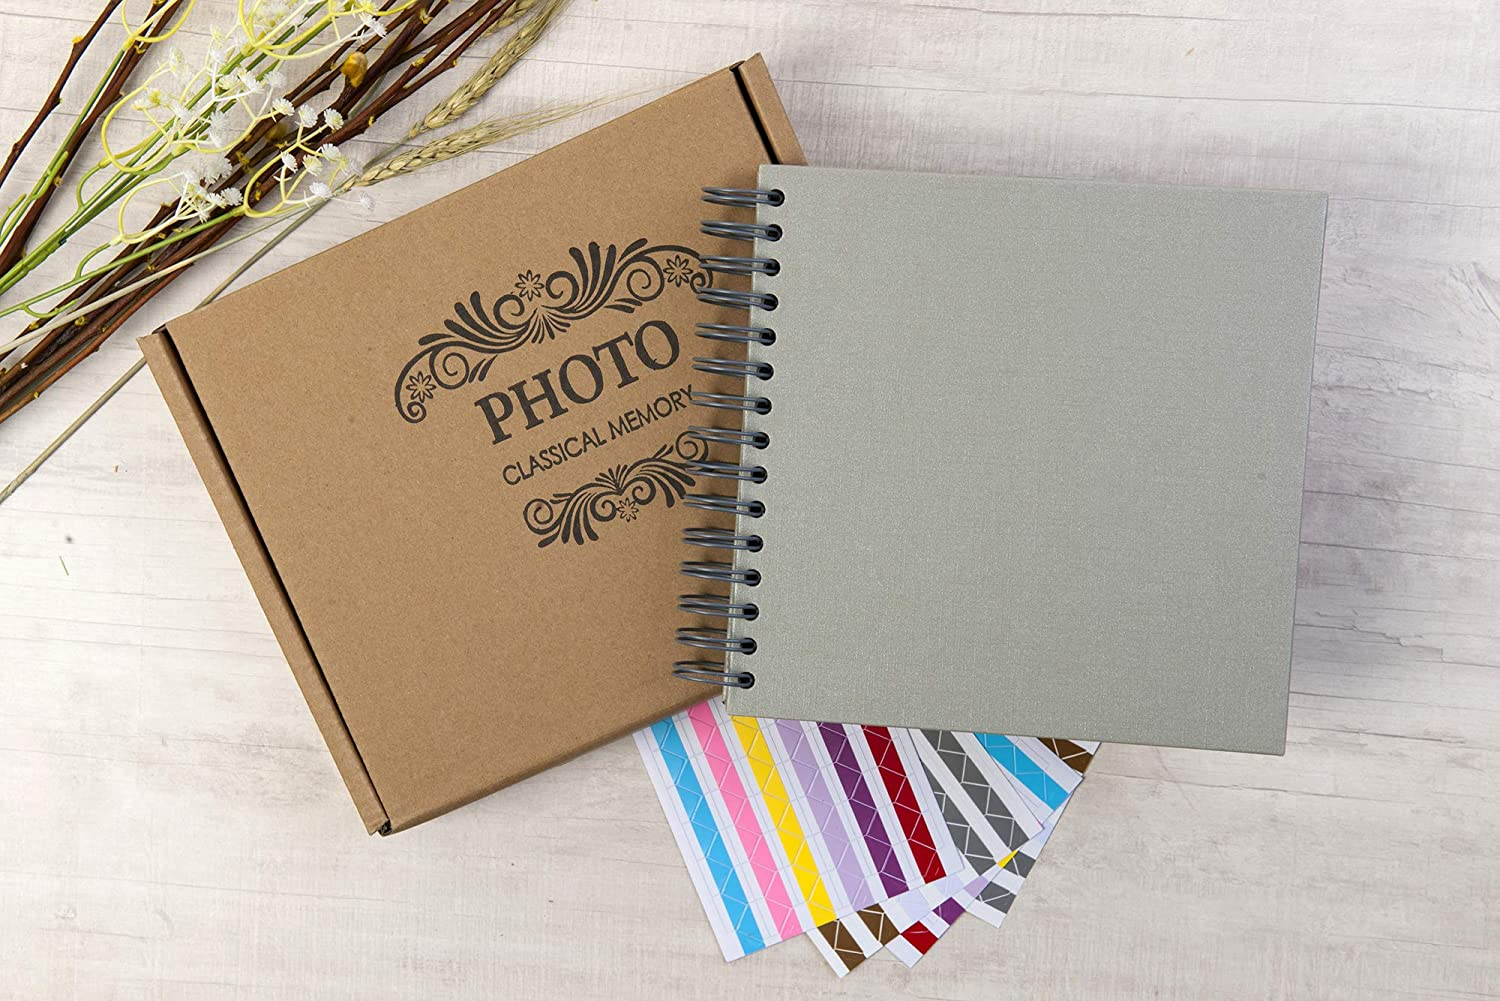 10 x 10 Inch DIY Scrapbook Photo Album Hardcover Kraft Blank Gray Page Wedding and Anniversary Family Photo Album Gray, 10 Inch